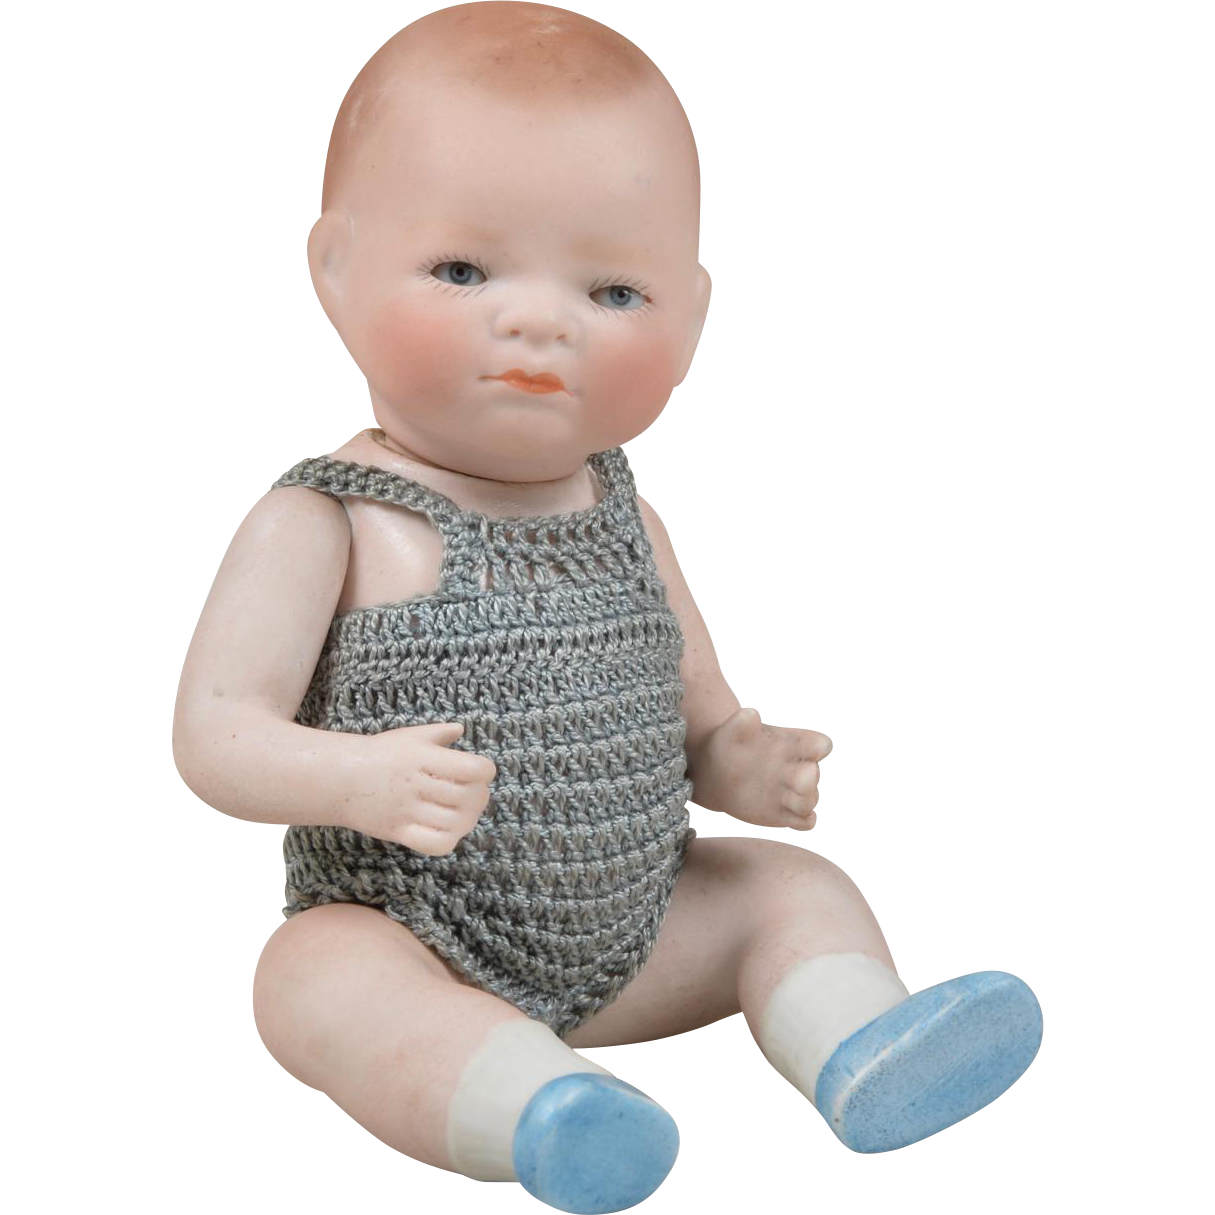 View Baby Shop in Adamstown, NSW | OzBusiness provides full local business details for your convenience.